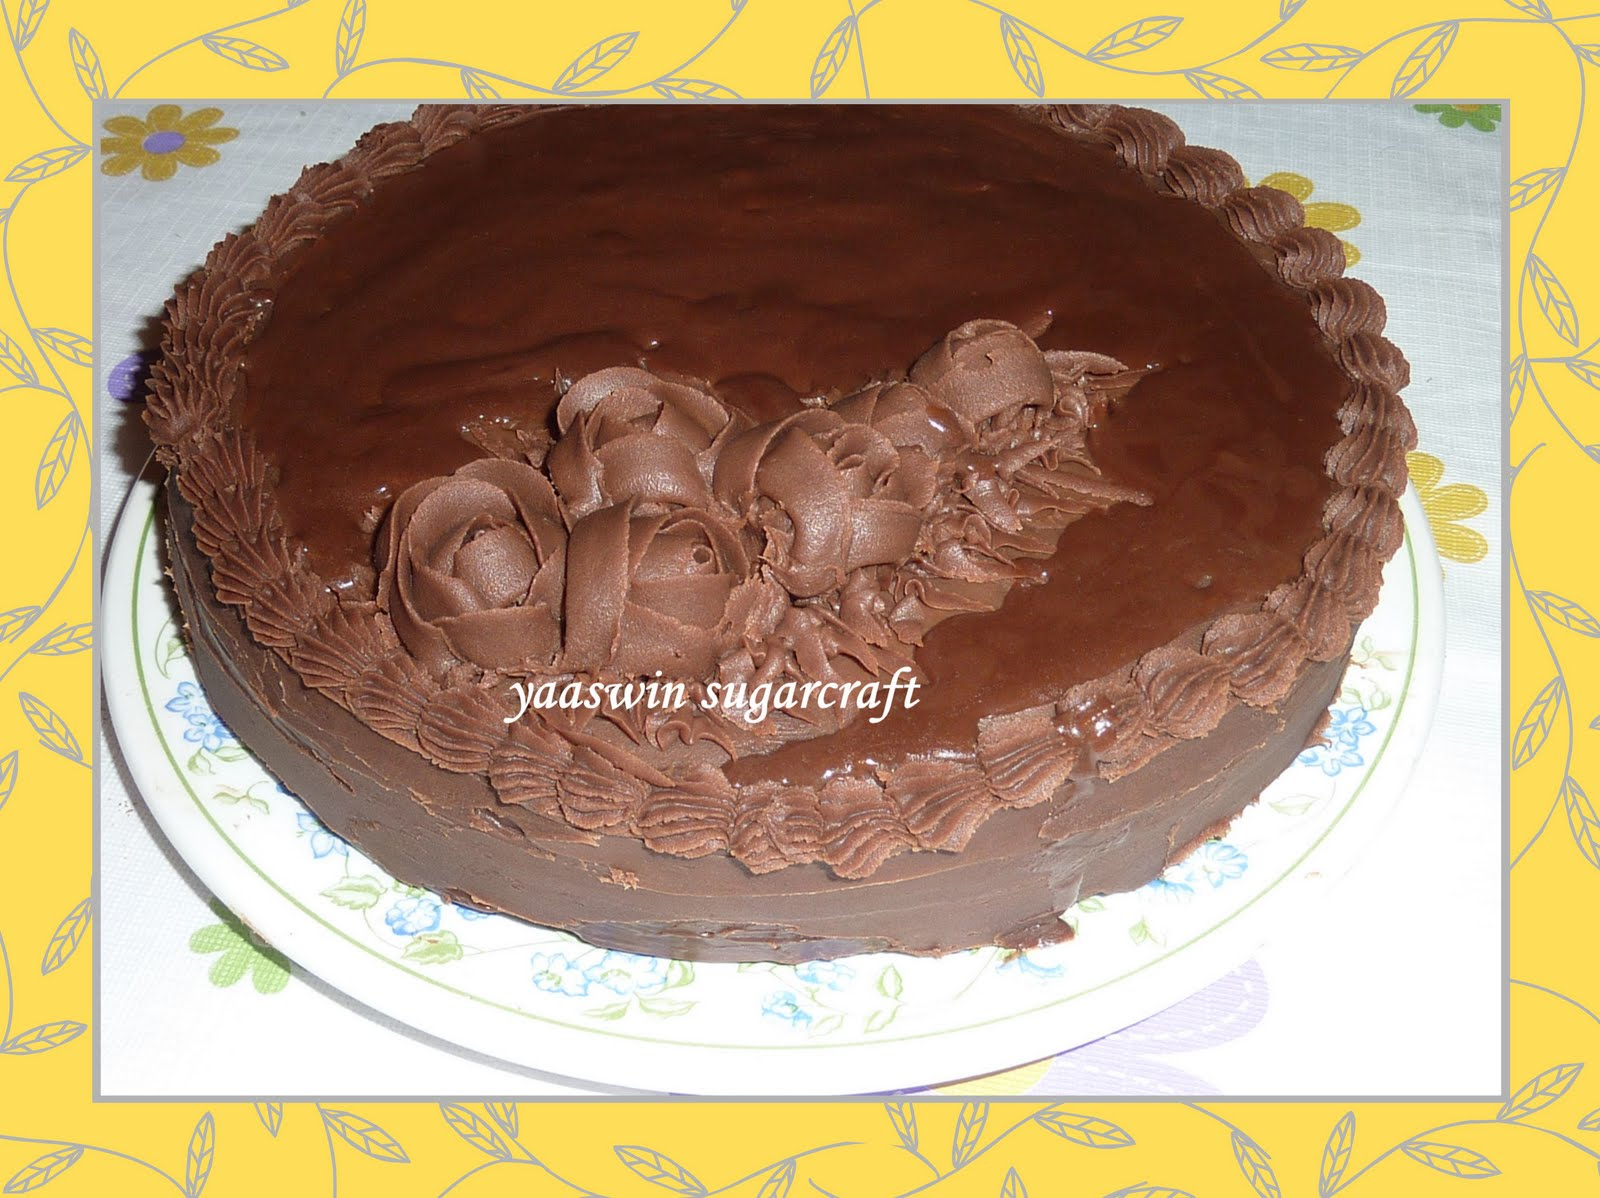 Yaaswin Sugarcraft & Cakes: Moist Chocolate Ganache Cake